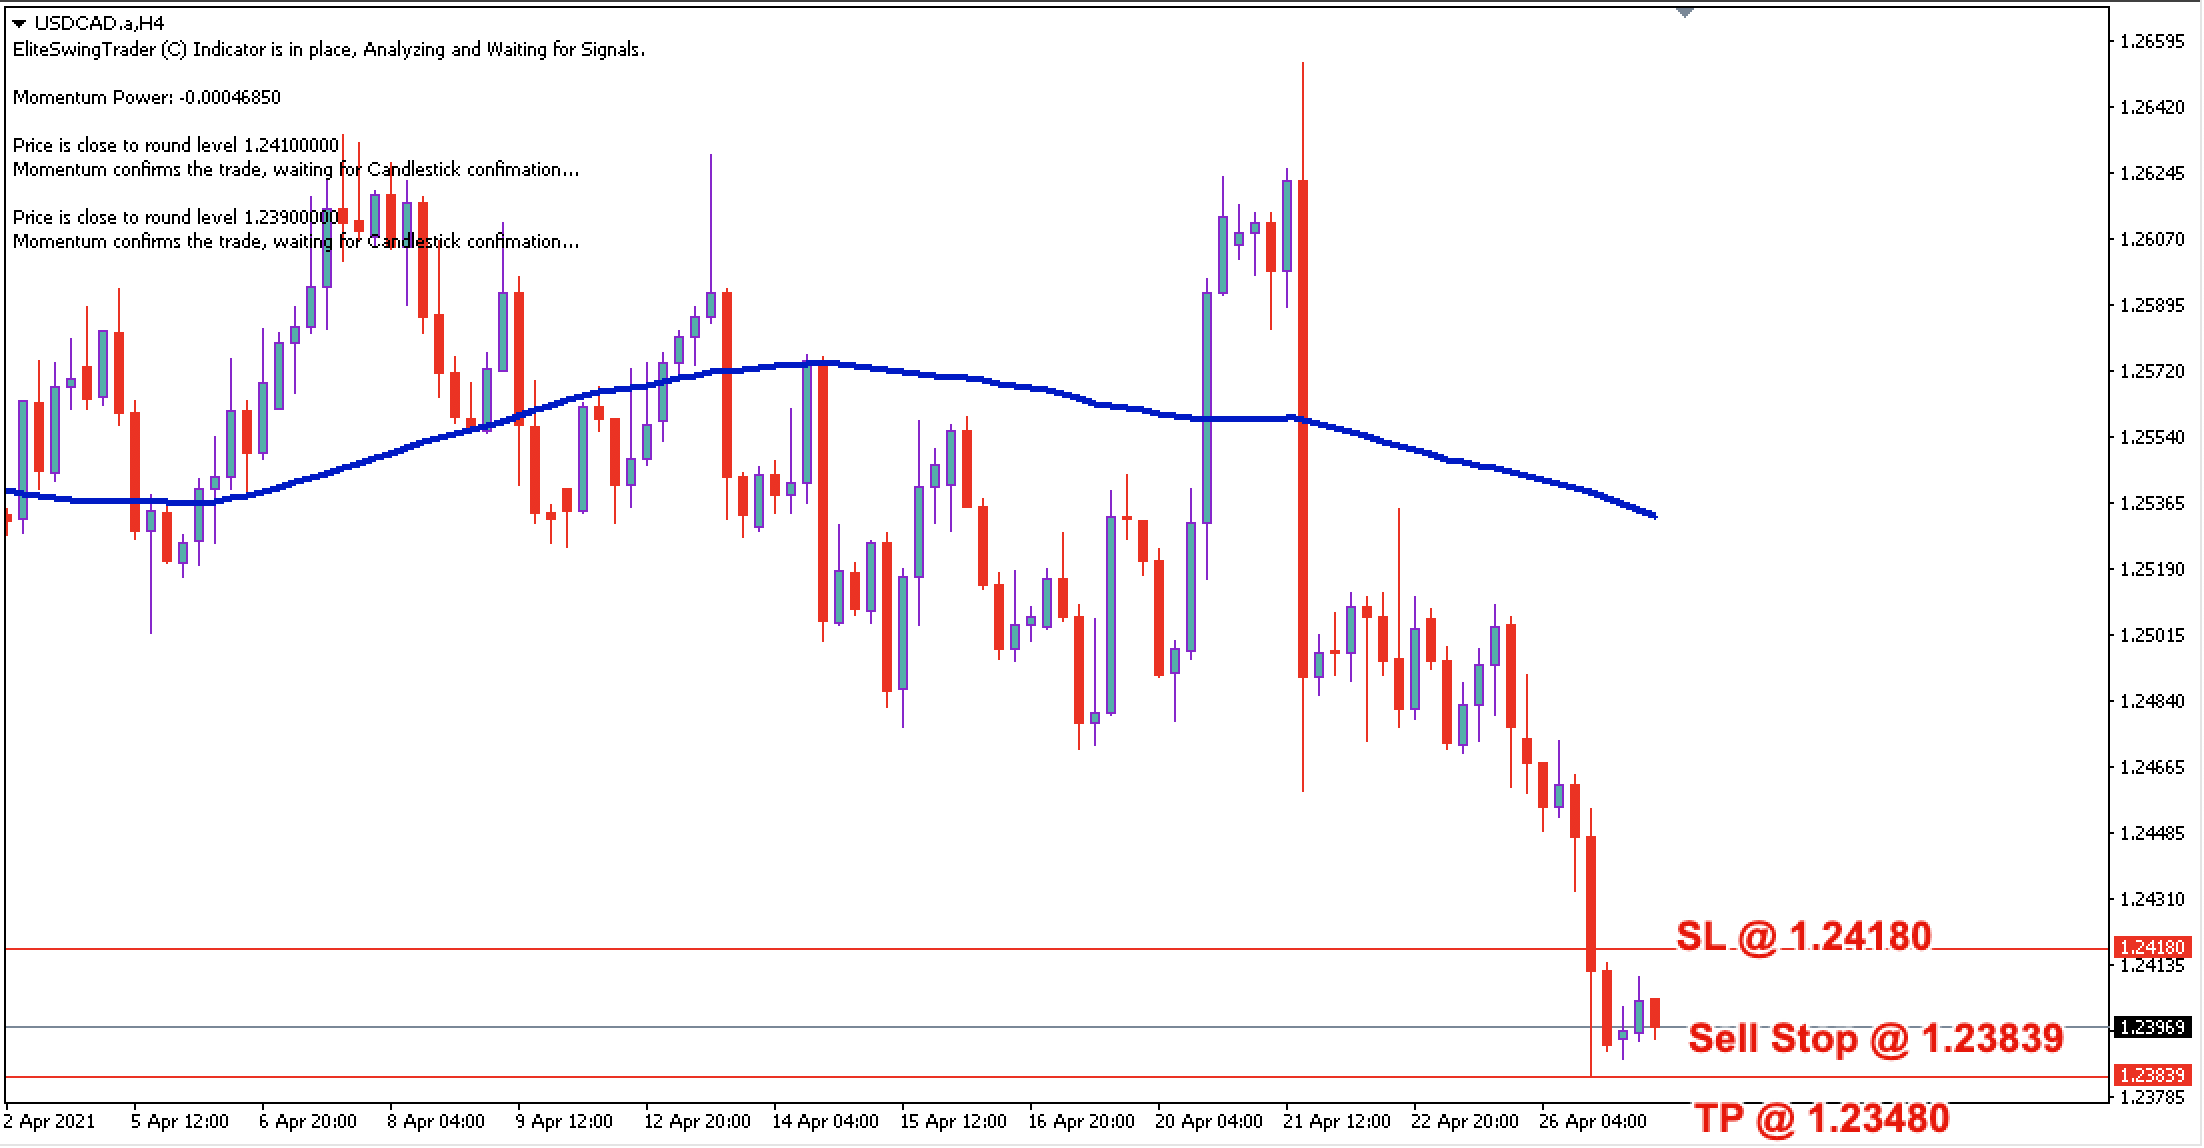 USD/CAD Daily Price Forecast - 27th April 2021